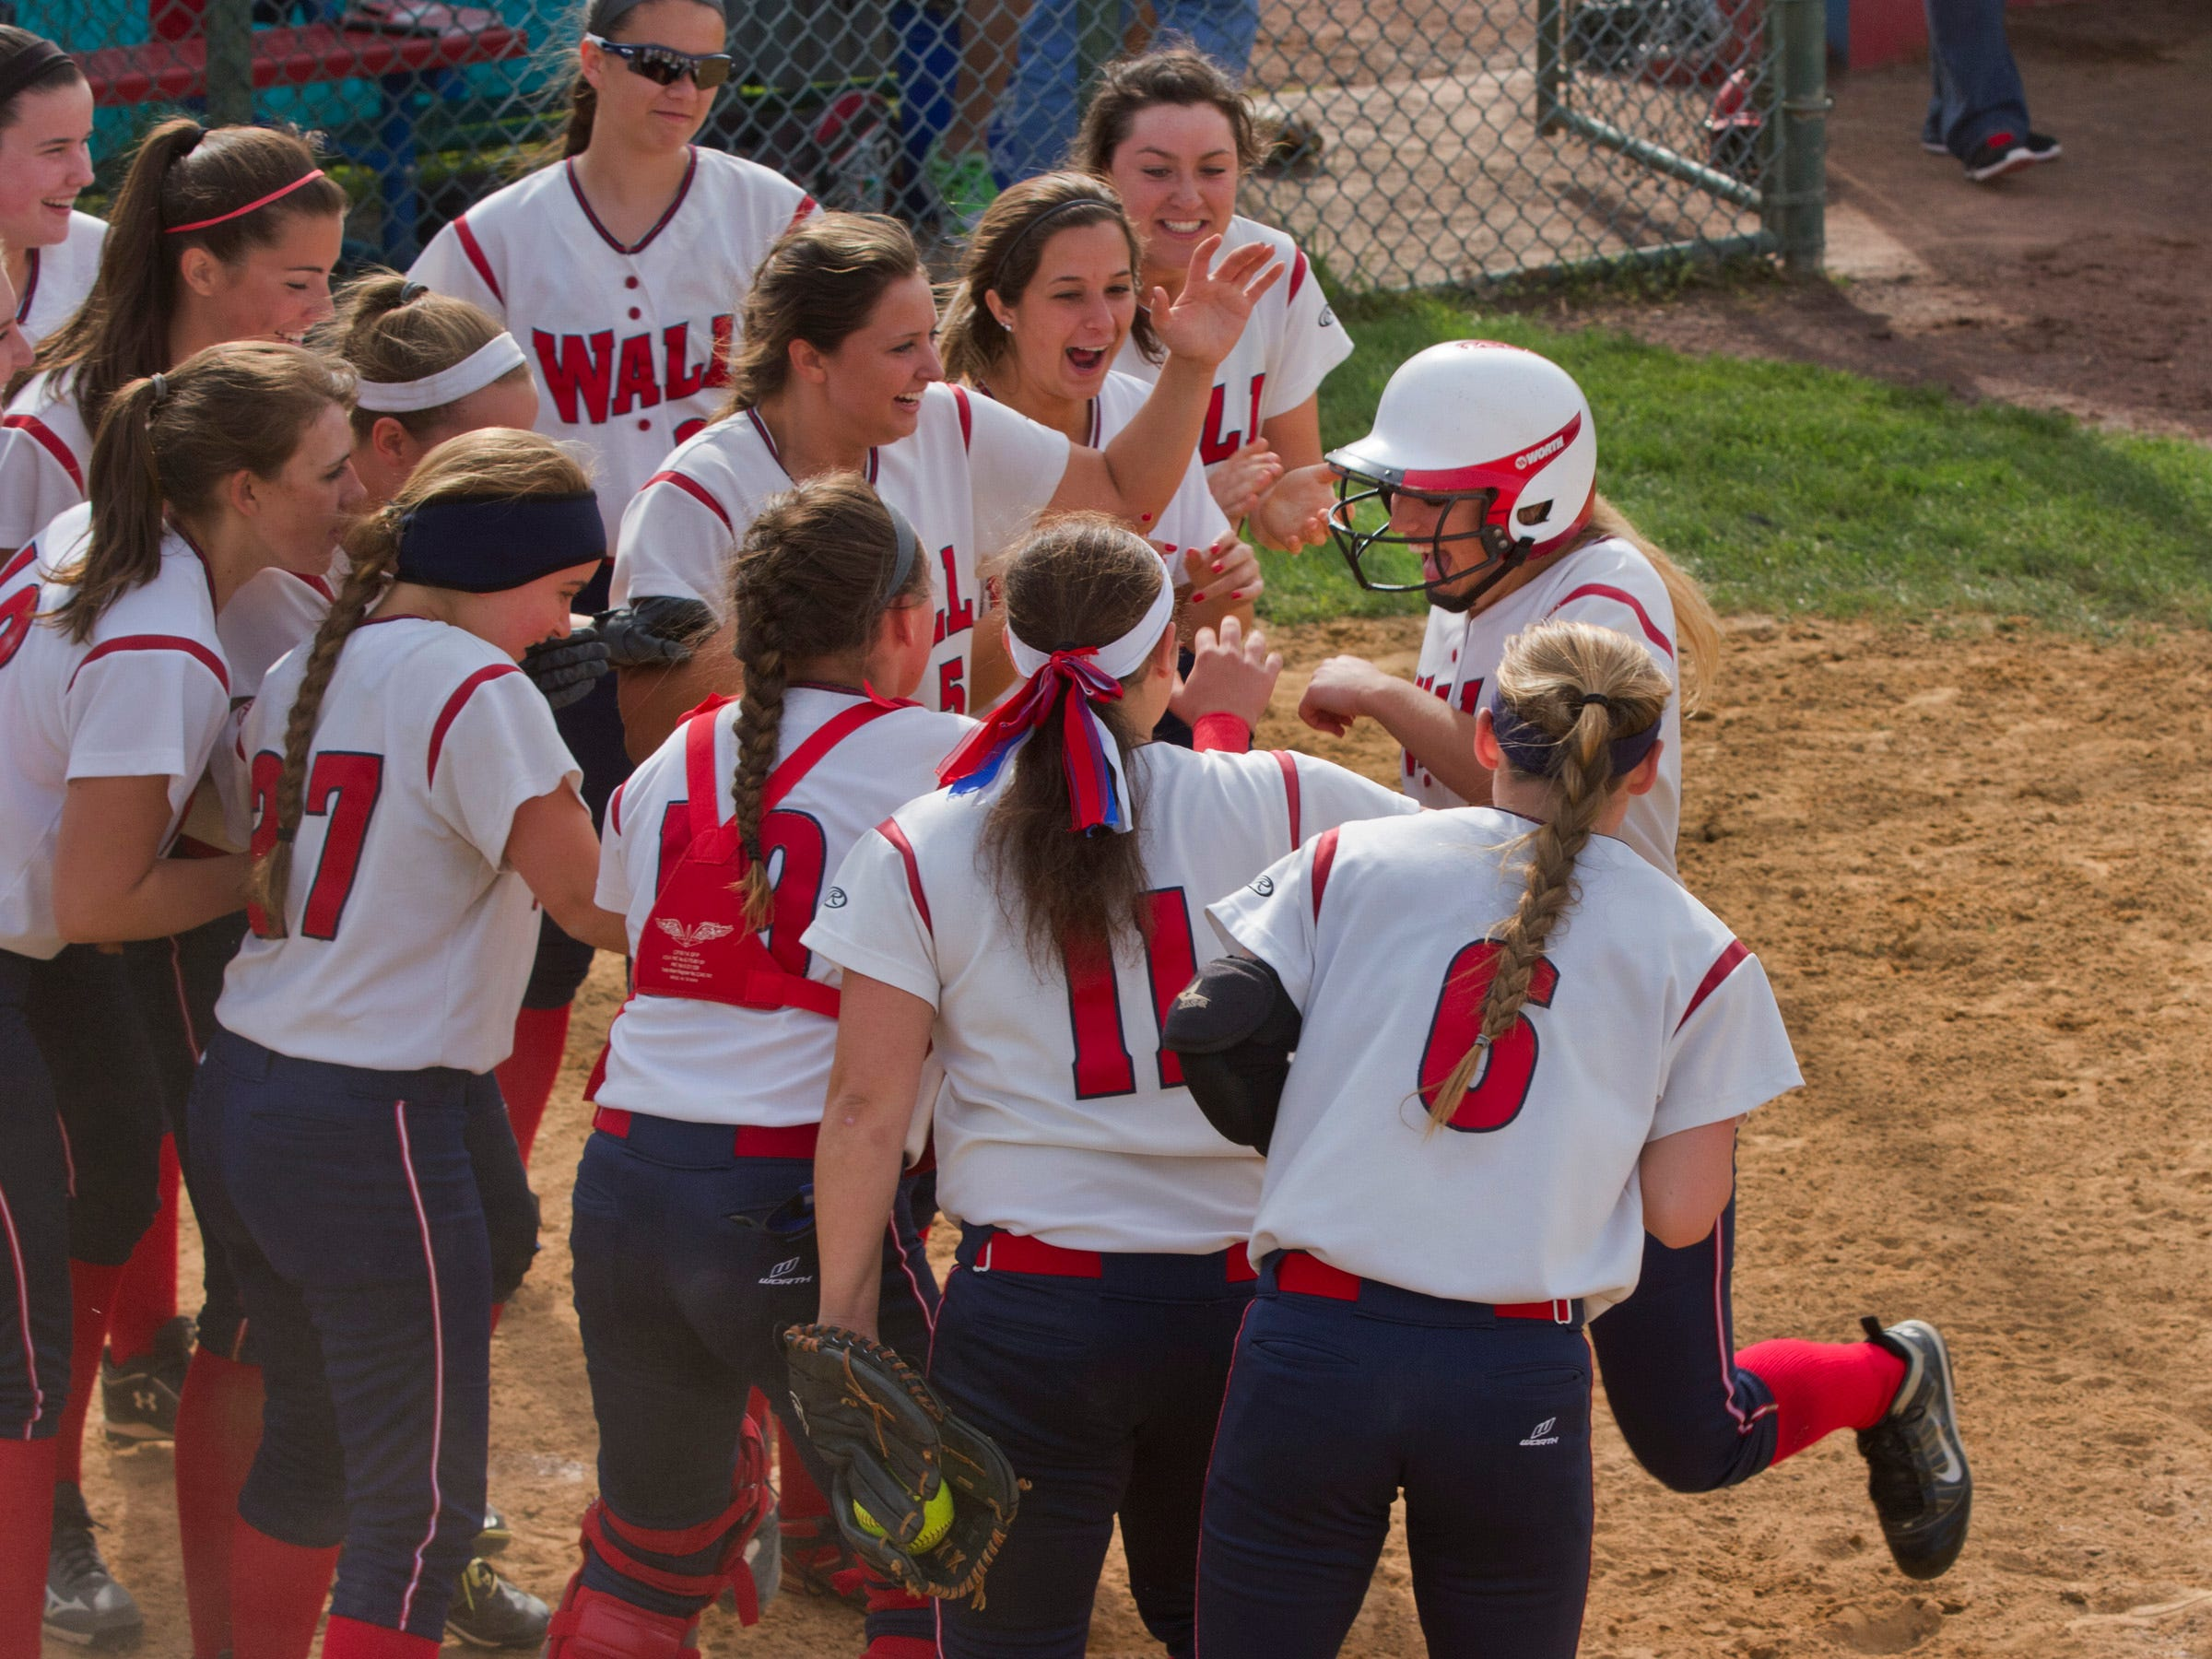 Wall players wait at home plate to pounce on Carly Layton after she hit a sixth-inning home run to put her team up 3-2 against Jackson Liberty in an NJSIAA Central Group III game in Wall on Wednesday.